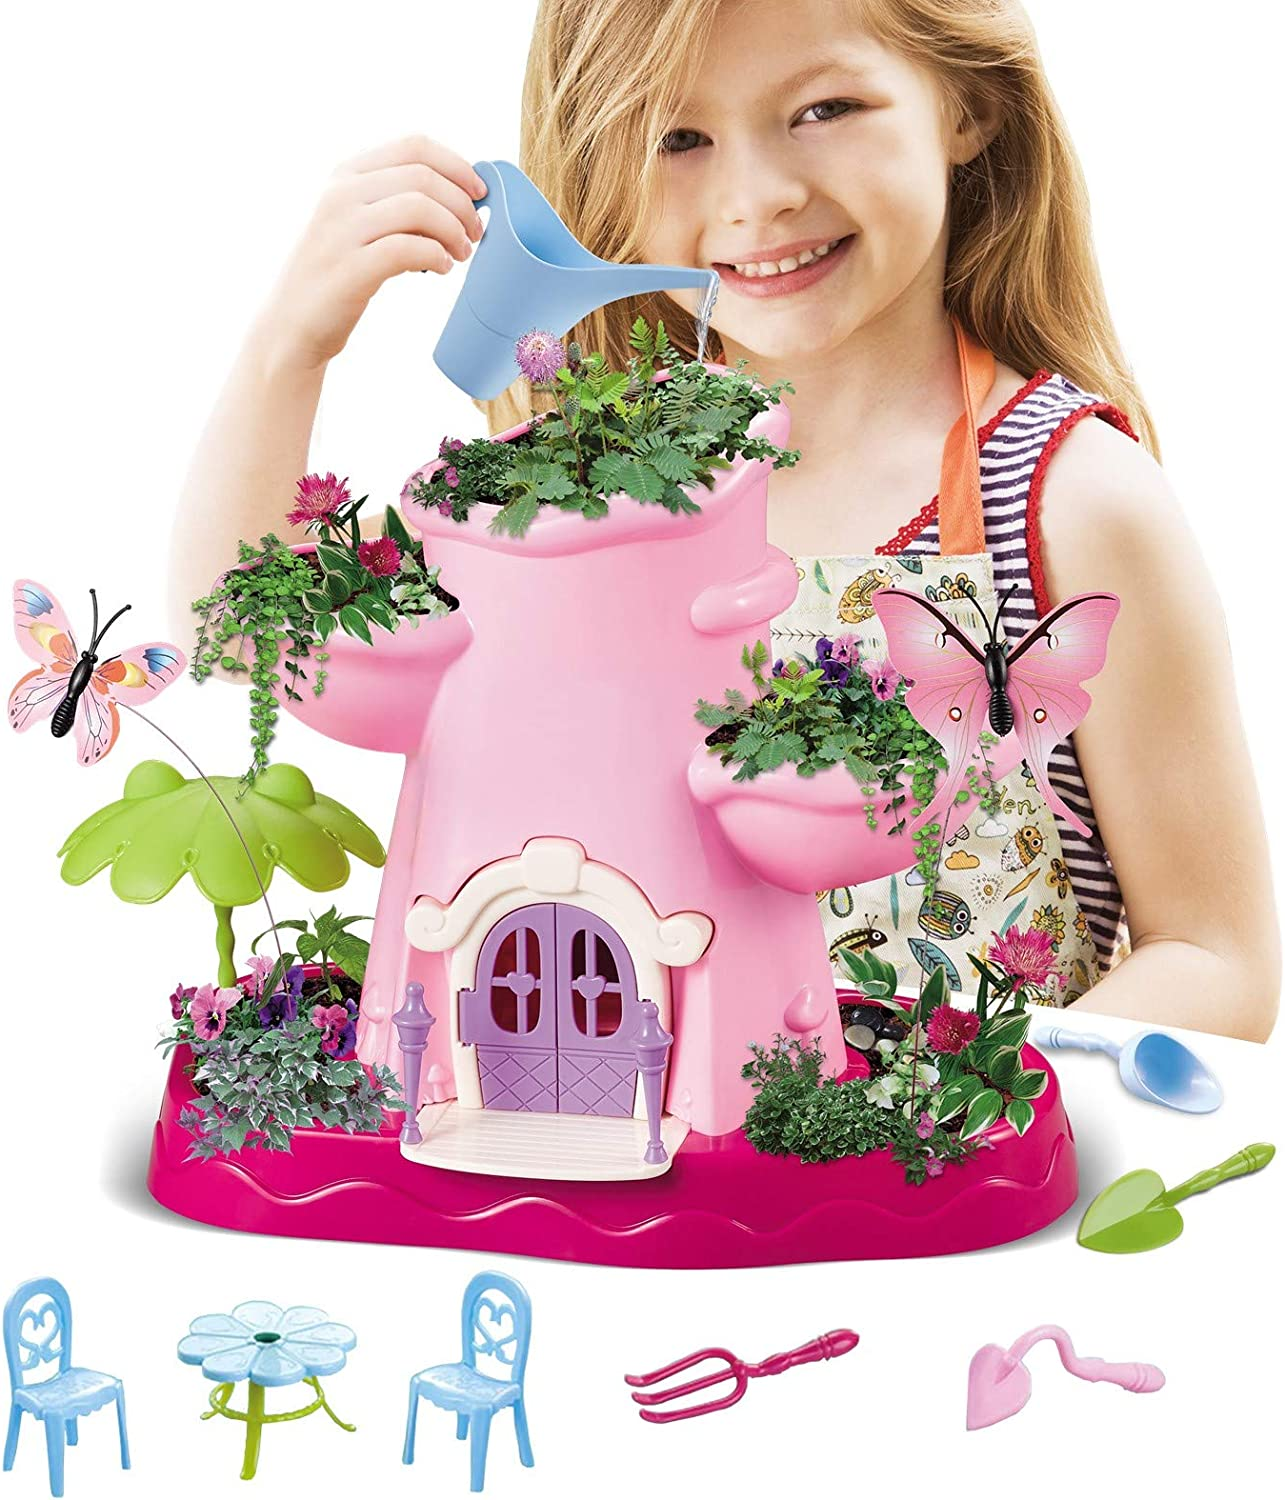 Vokodo Kids Magical Garden Growing Kit Includes Tools Seeds Soil Flower Plant Tree Interactive Play Fairy Toys Inspires Horticulture Learning Great Gift for Children Girls Pink